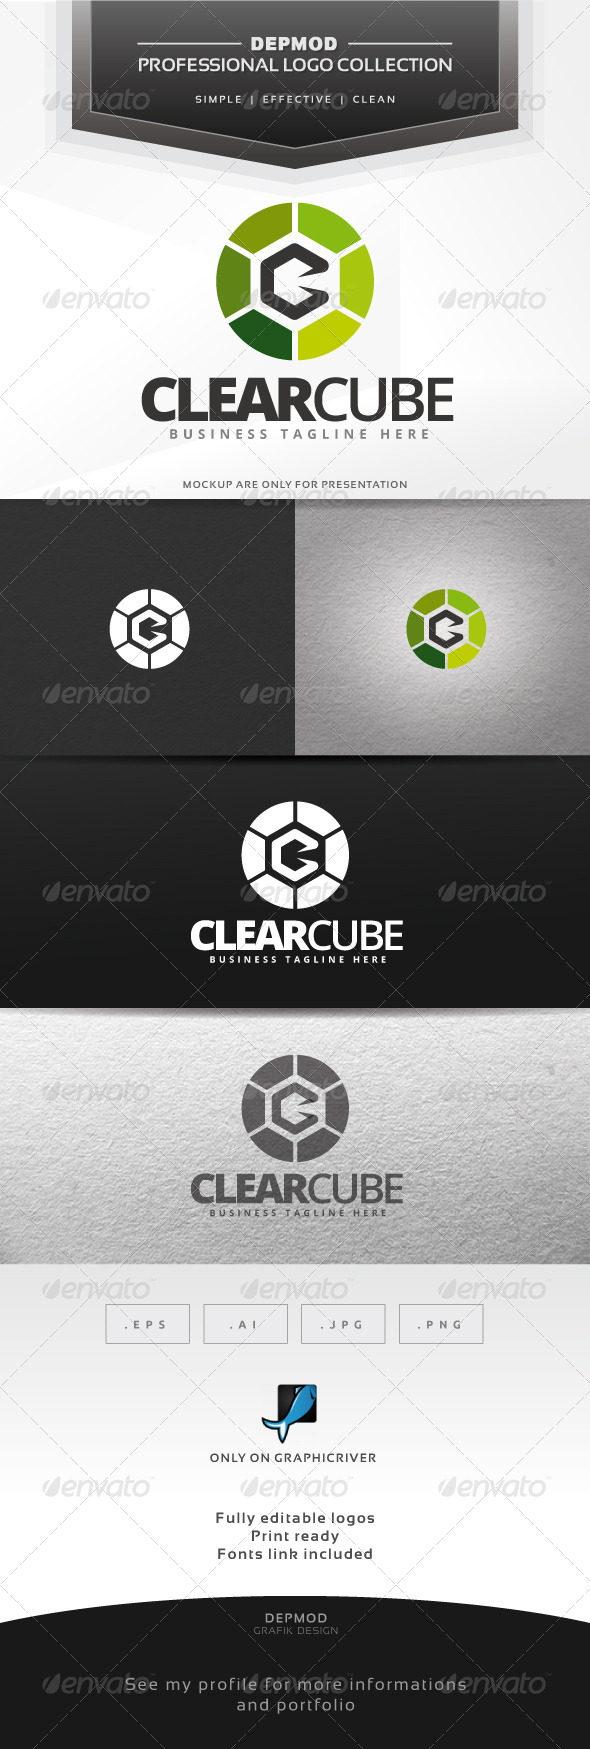 Clear Cube Logo - Abstract Logo Templates